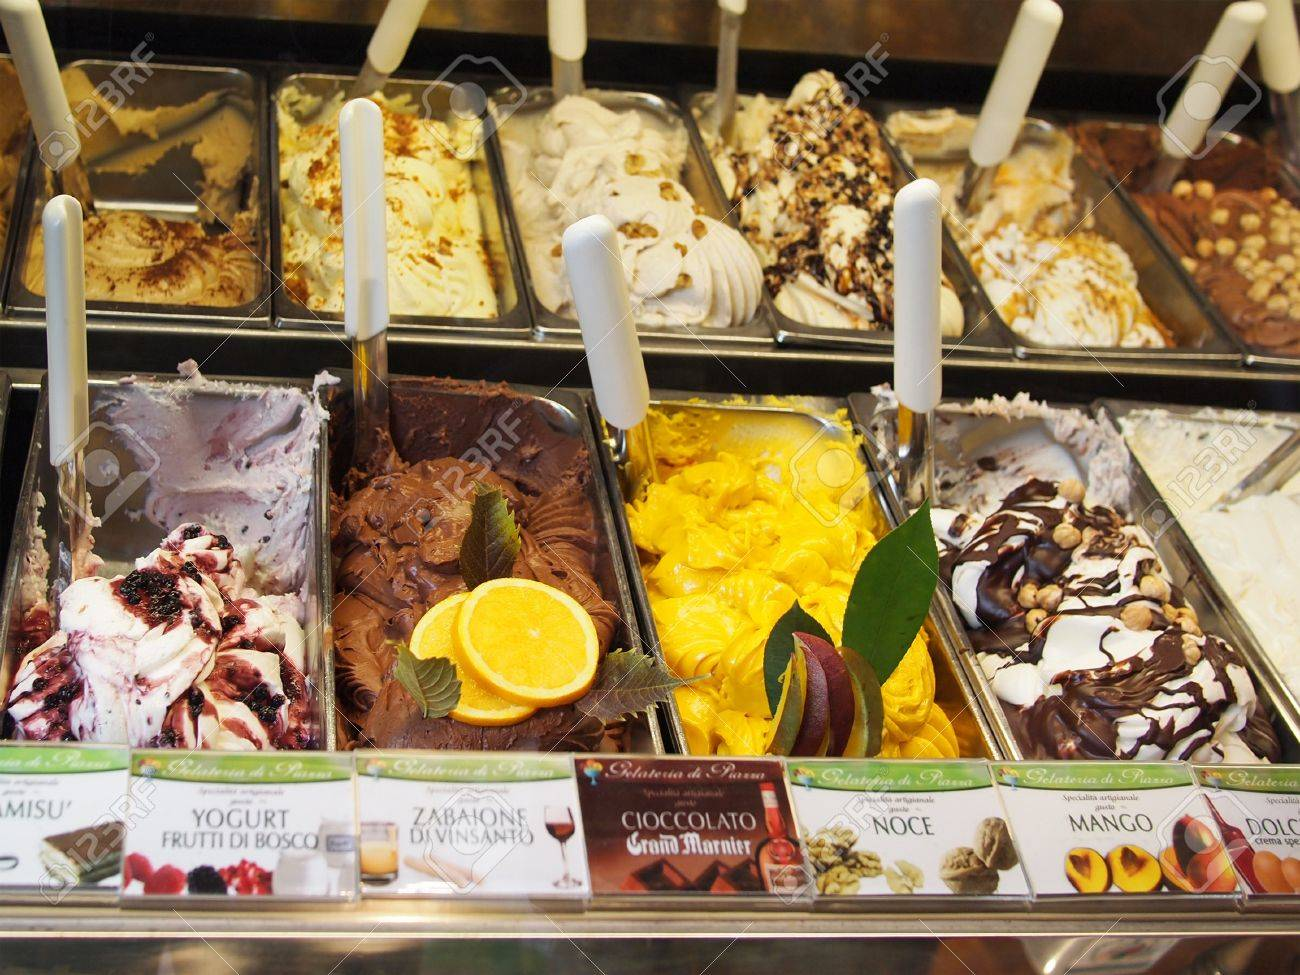 San Gimignano, Italy – October 10, 2010: Ice cream flavours in the world famous ice cream shop 'Gelateria di Piazza' at the central square in San Gimignano, which has won several international prizes, including the 'Ice Cream World Championship' Stock Photo - 9286741